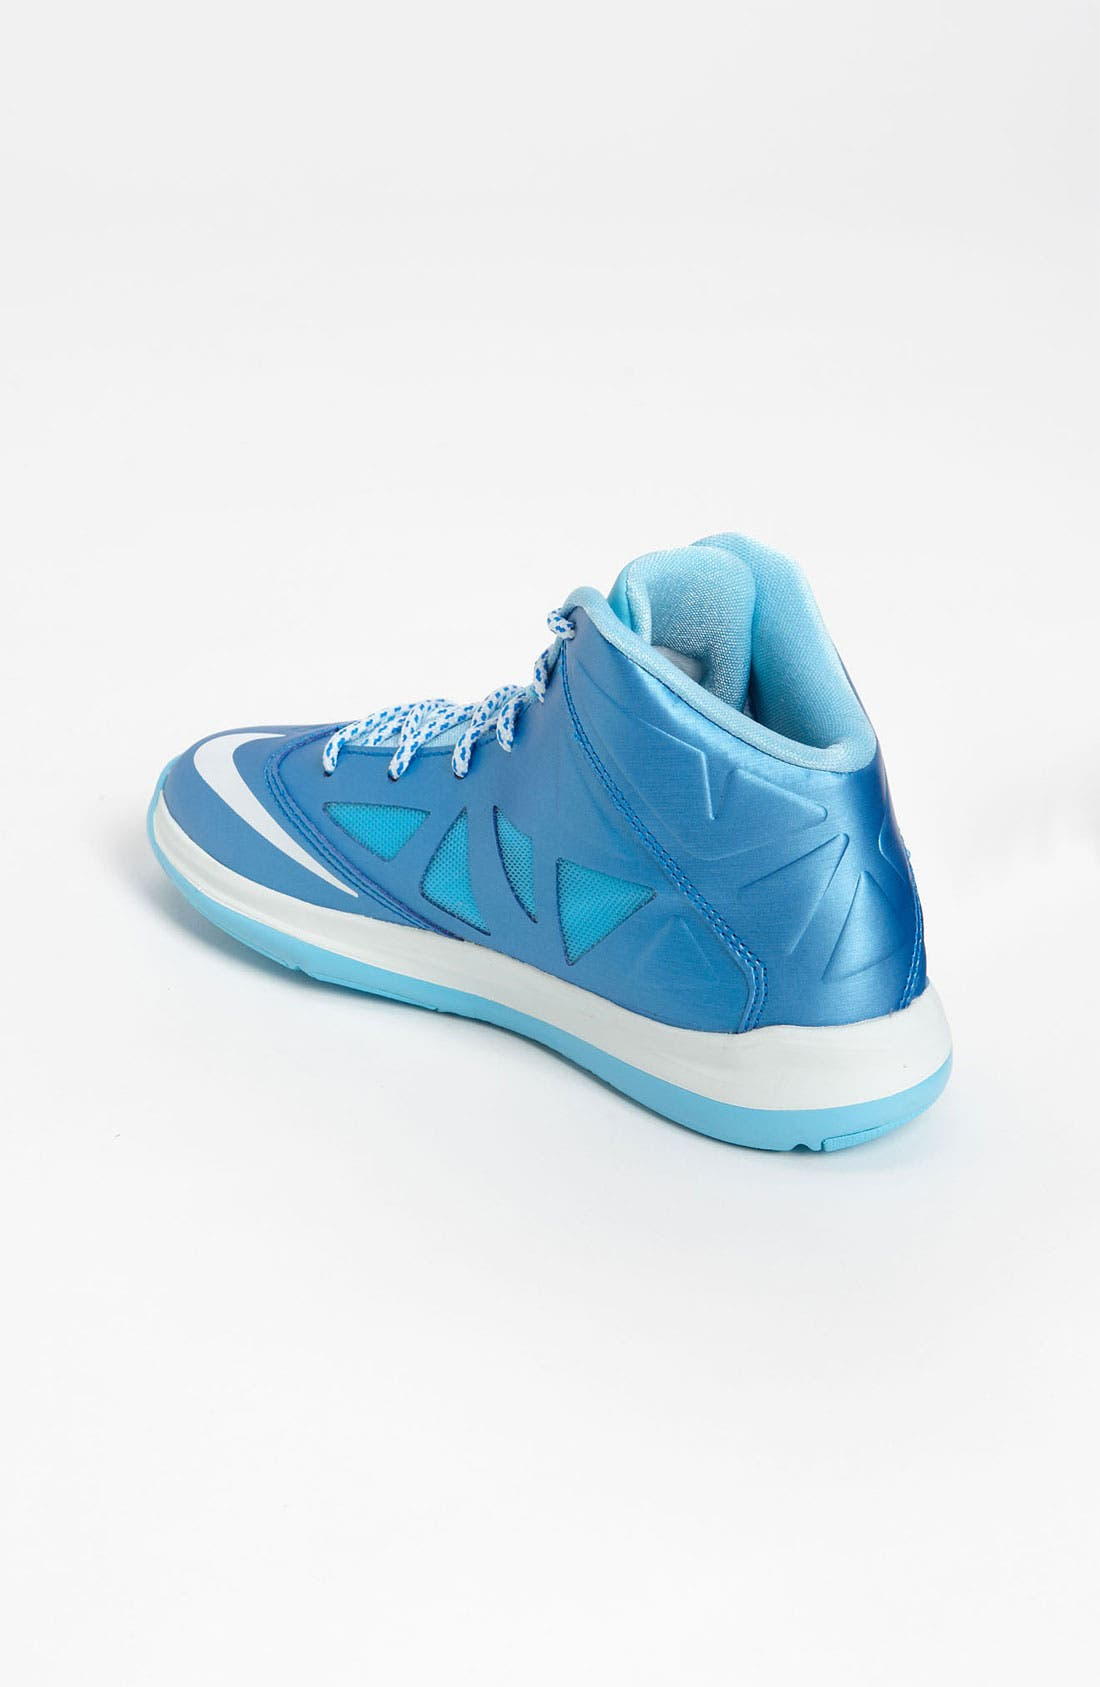 Alternate Image 2  - Nike 'LeBron 10 Pressure' Basketball Shoe (Toddler & Little Kid)